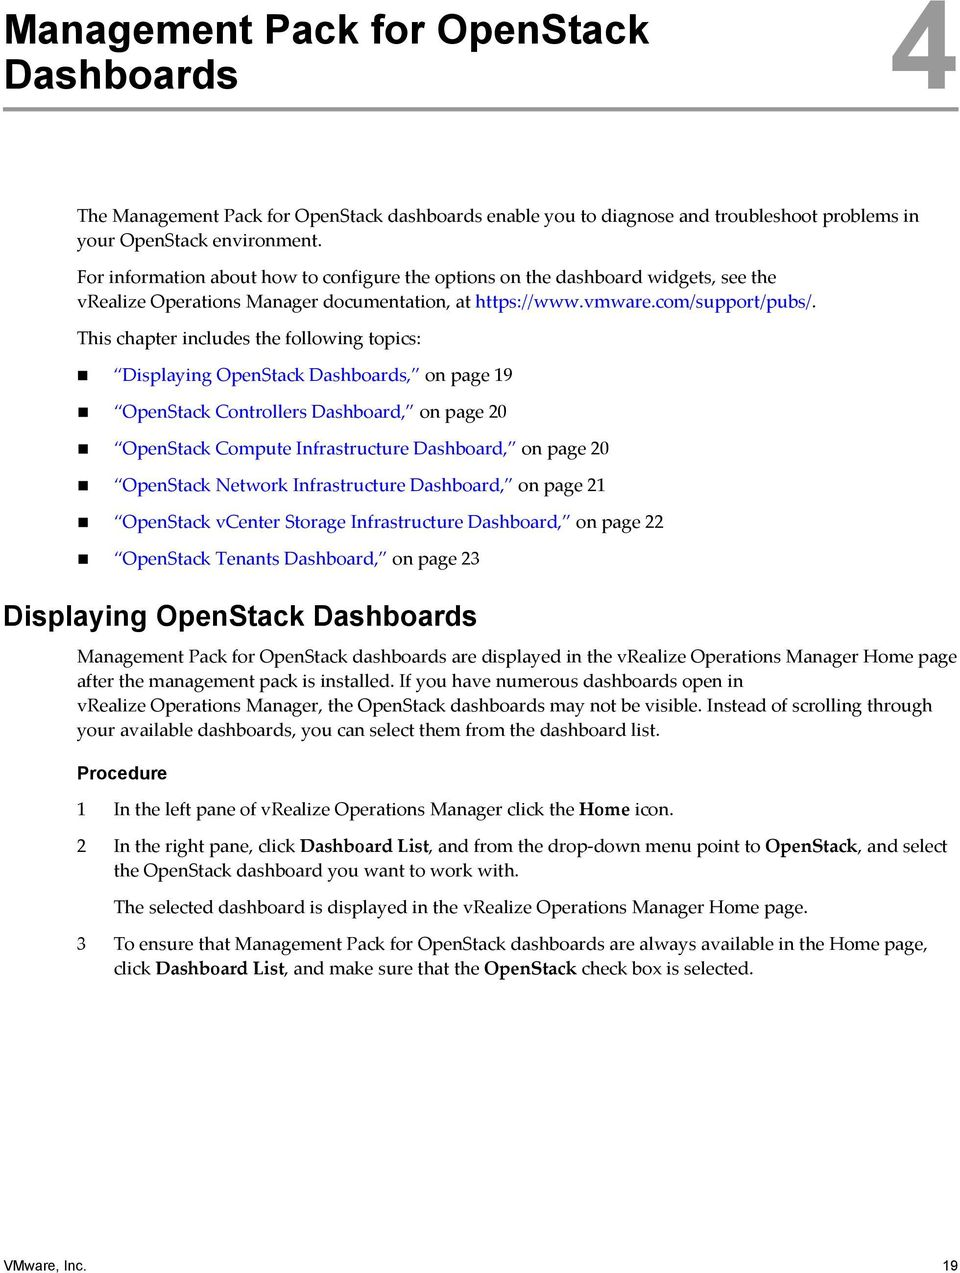 This chapter includes the following topics: Displaying Dashboards, on page 19 Controllers Dashboard, on page 20 Compute Infrastructure Dashboard, on page 20 Network Infrastructure Dashboard, on page